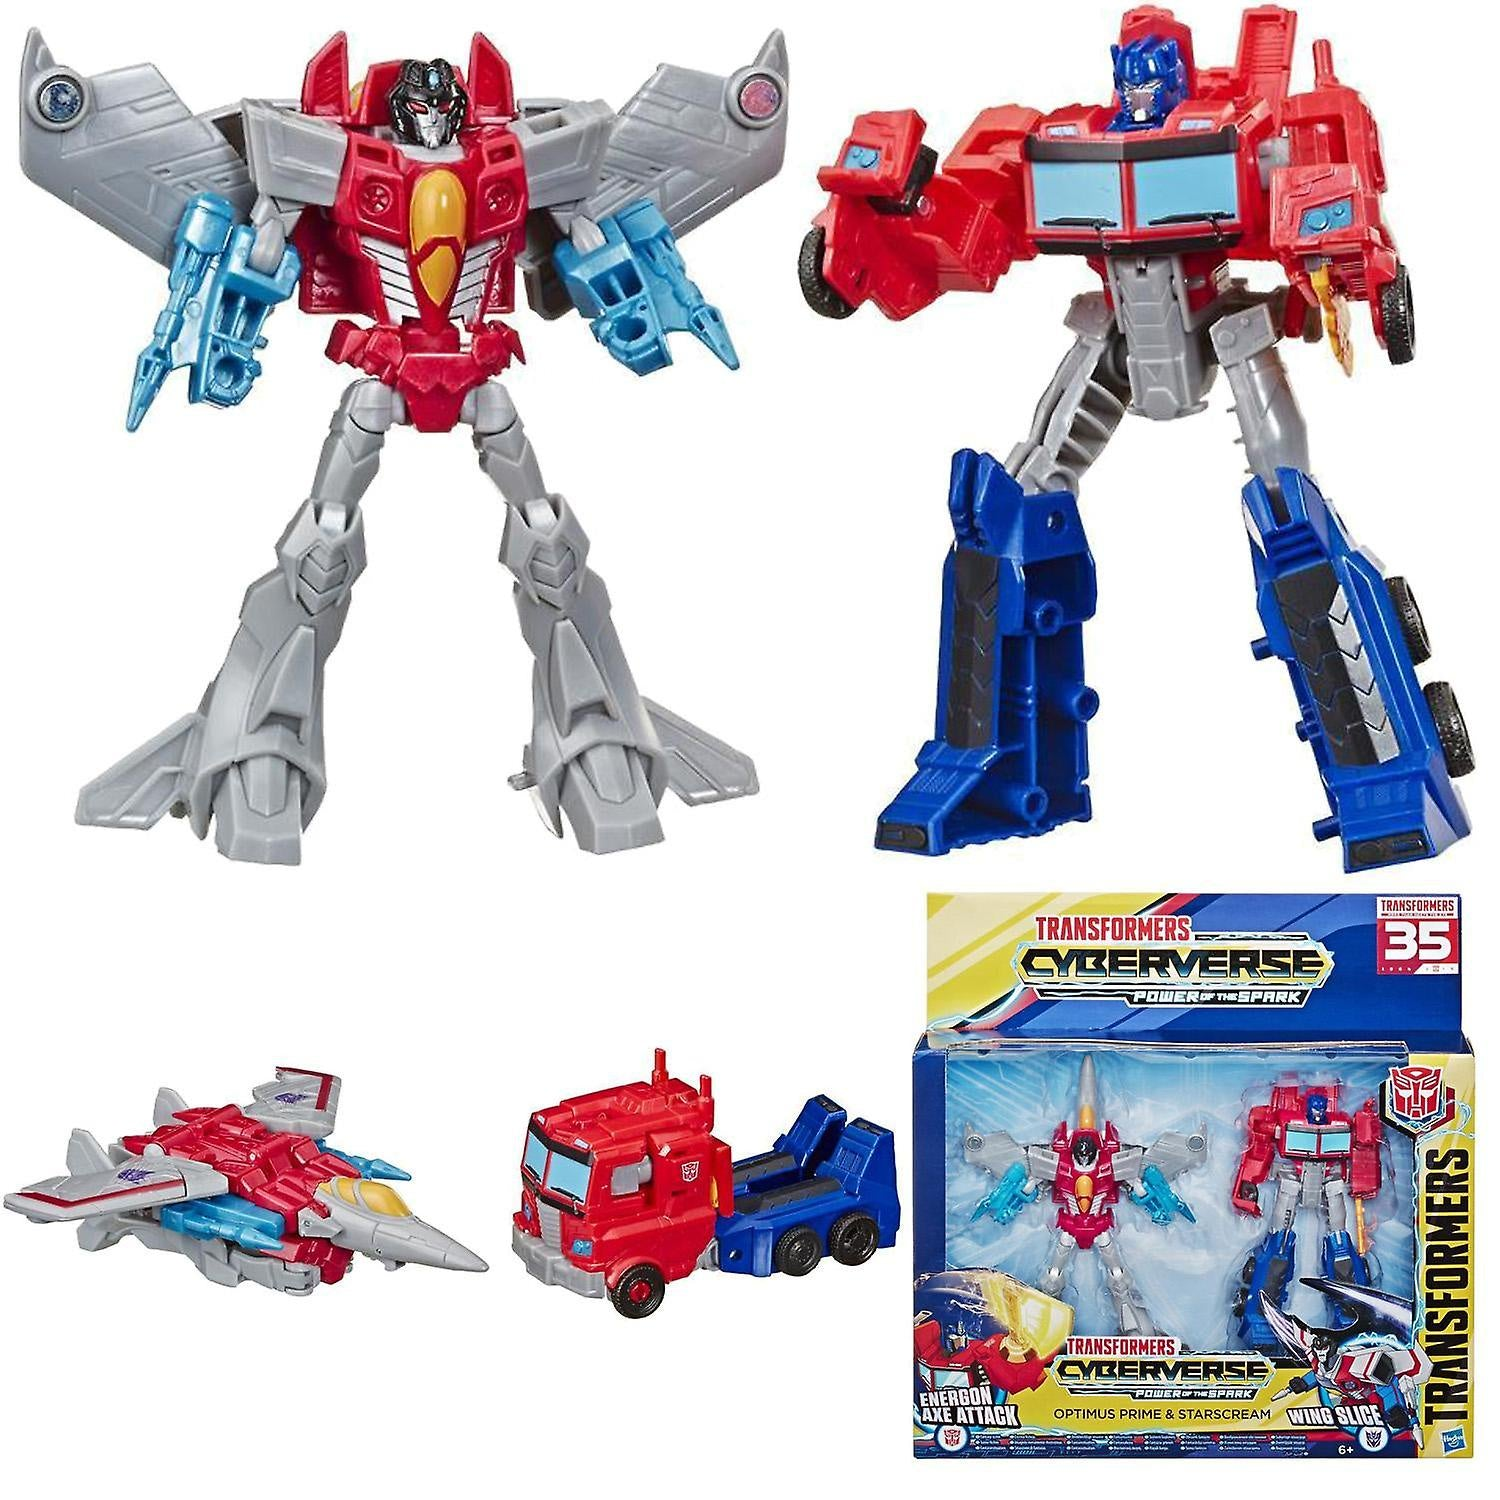 Transformers Cyberverse Power Of The Spark Optimus Prime And Starscream